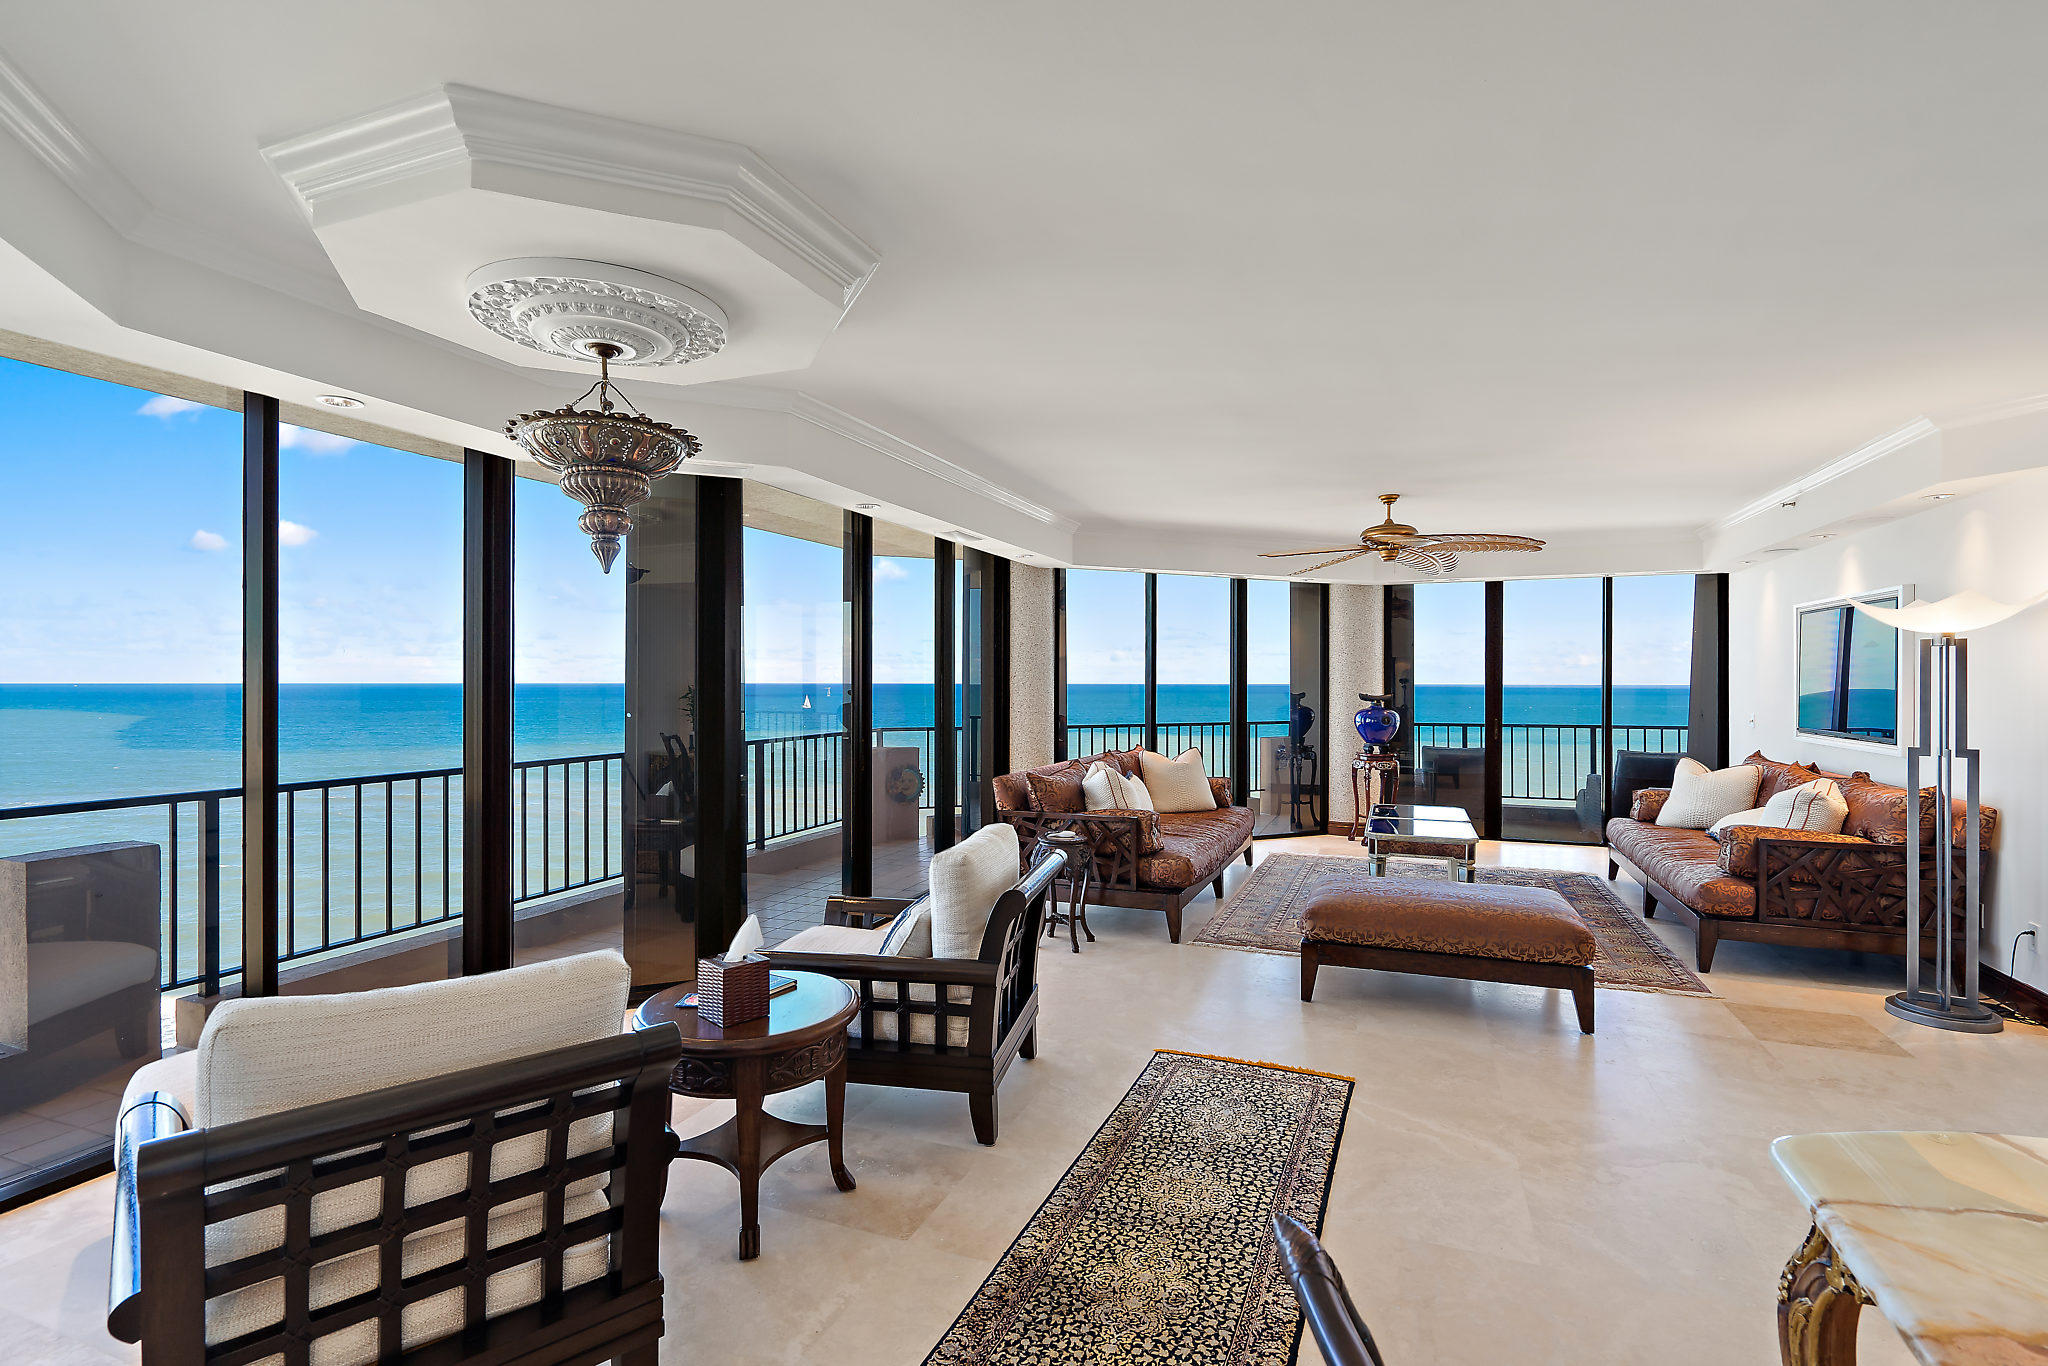 New Home for sale at 530 Ocean Drive in Juno Beach